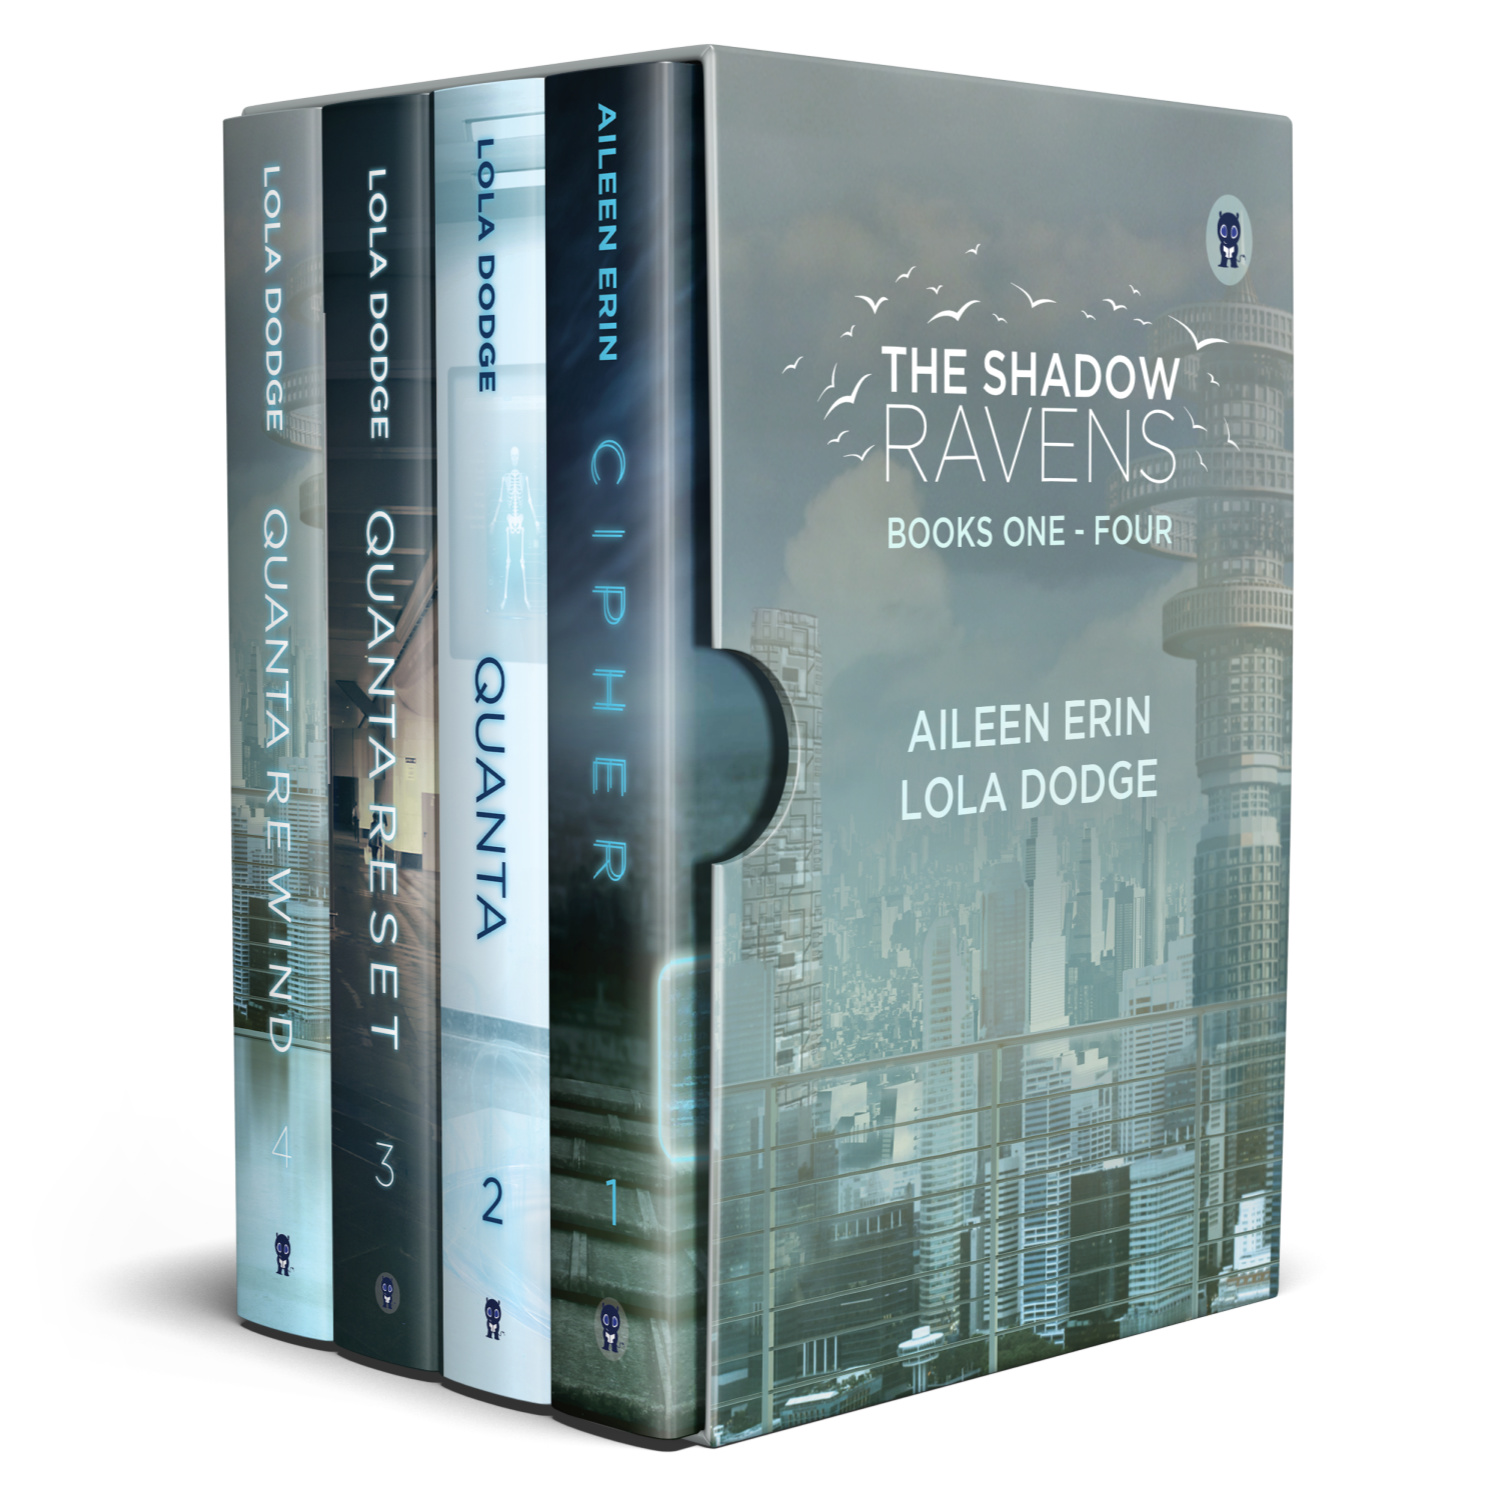 Cover Image of The Shadow Ravens Series Box Set